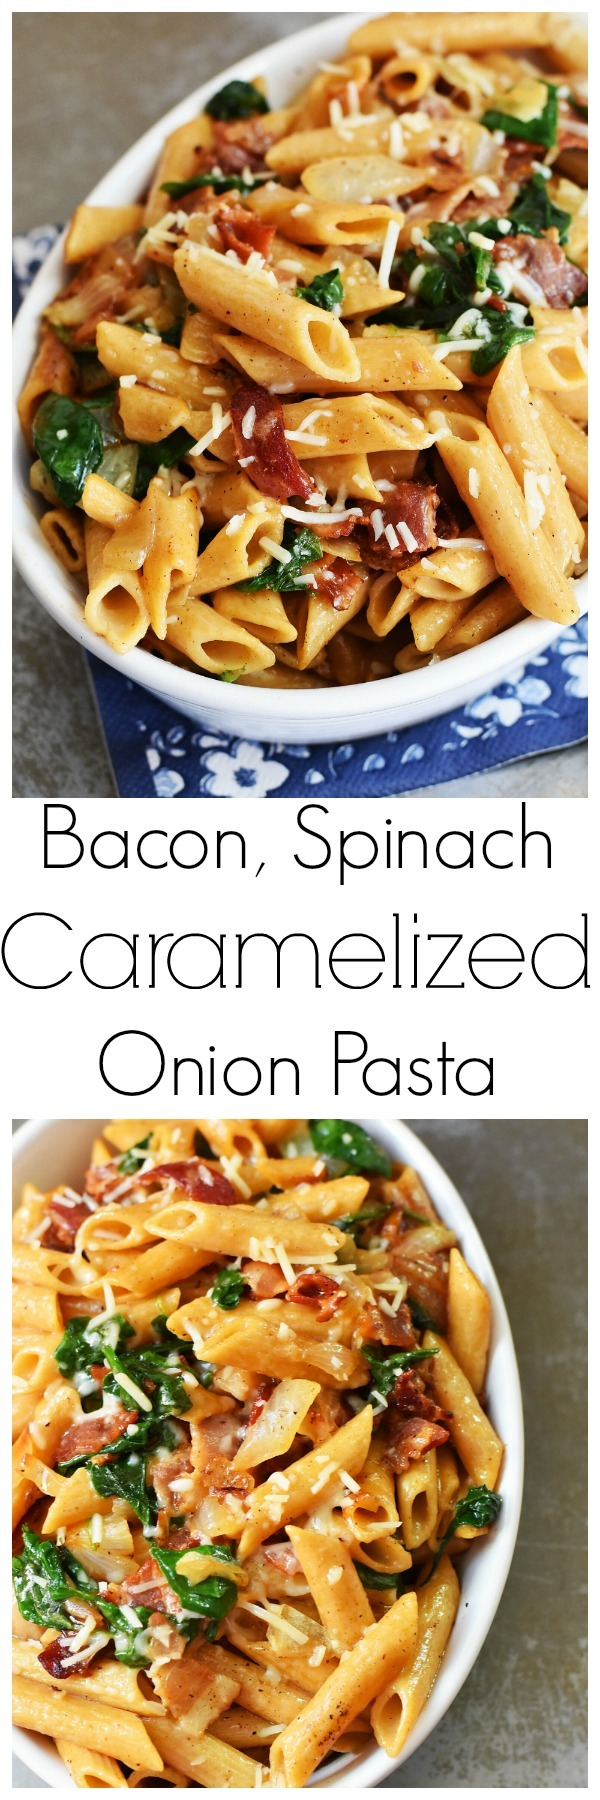 caramelized-bacon-spinach-pasta